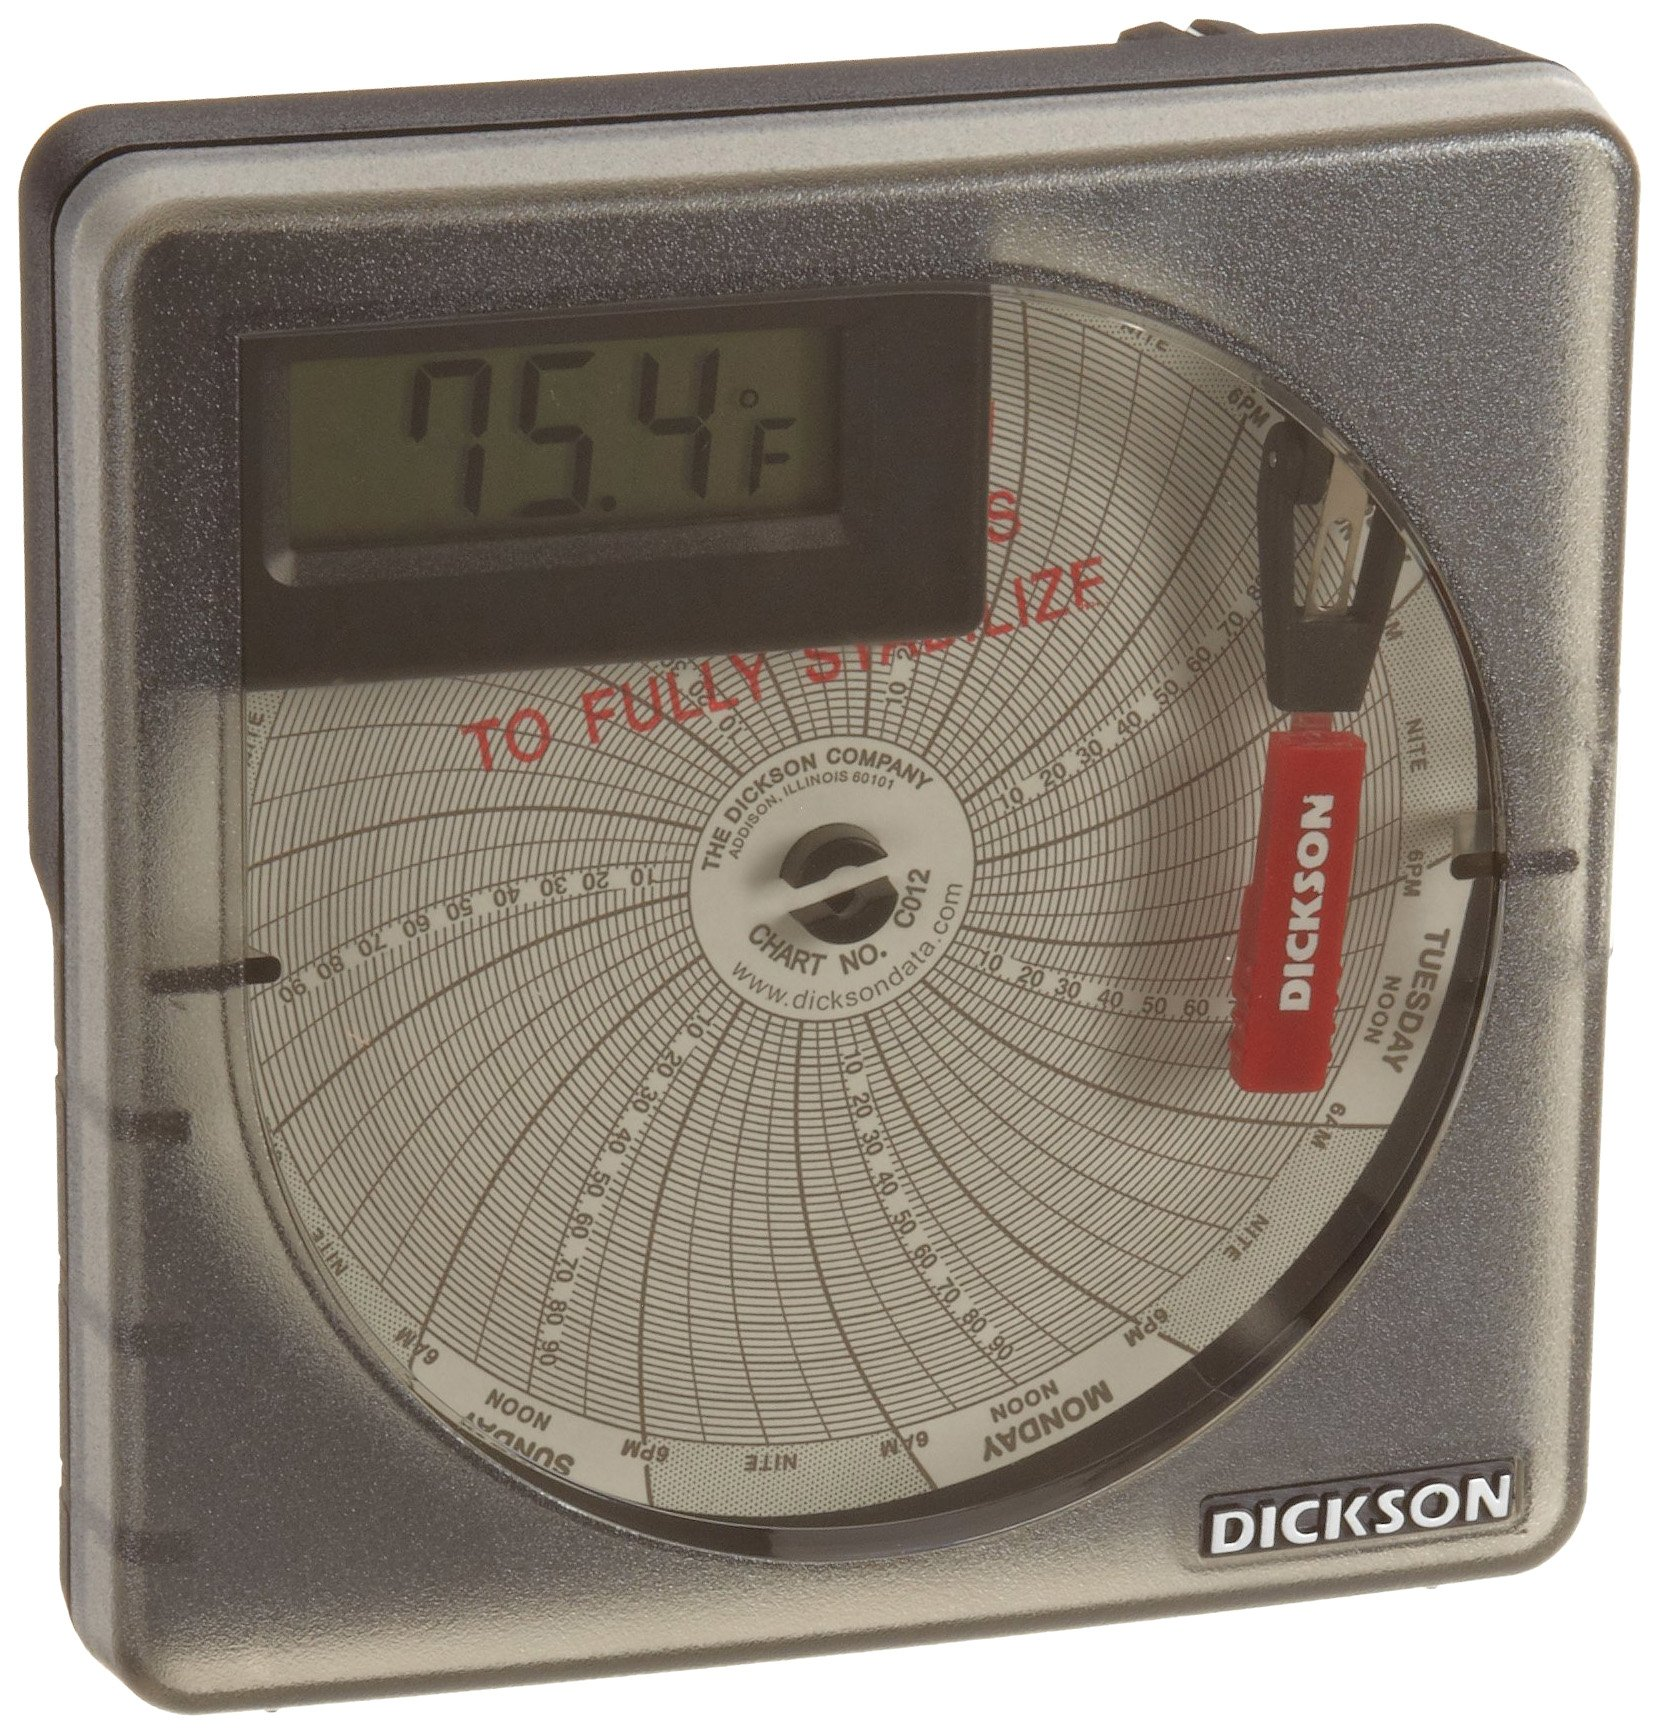 Oakton WD-08368-31 Chart Paper for Three Speed Hygrothermograph 0 Degree C 1 Day Rotation